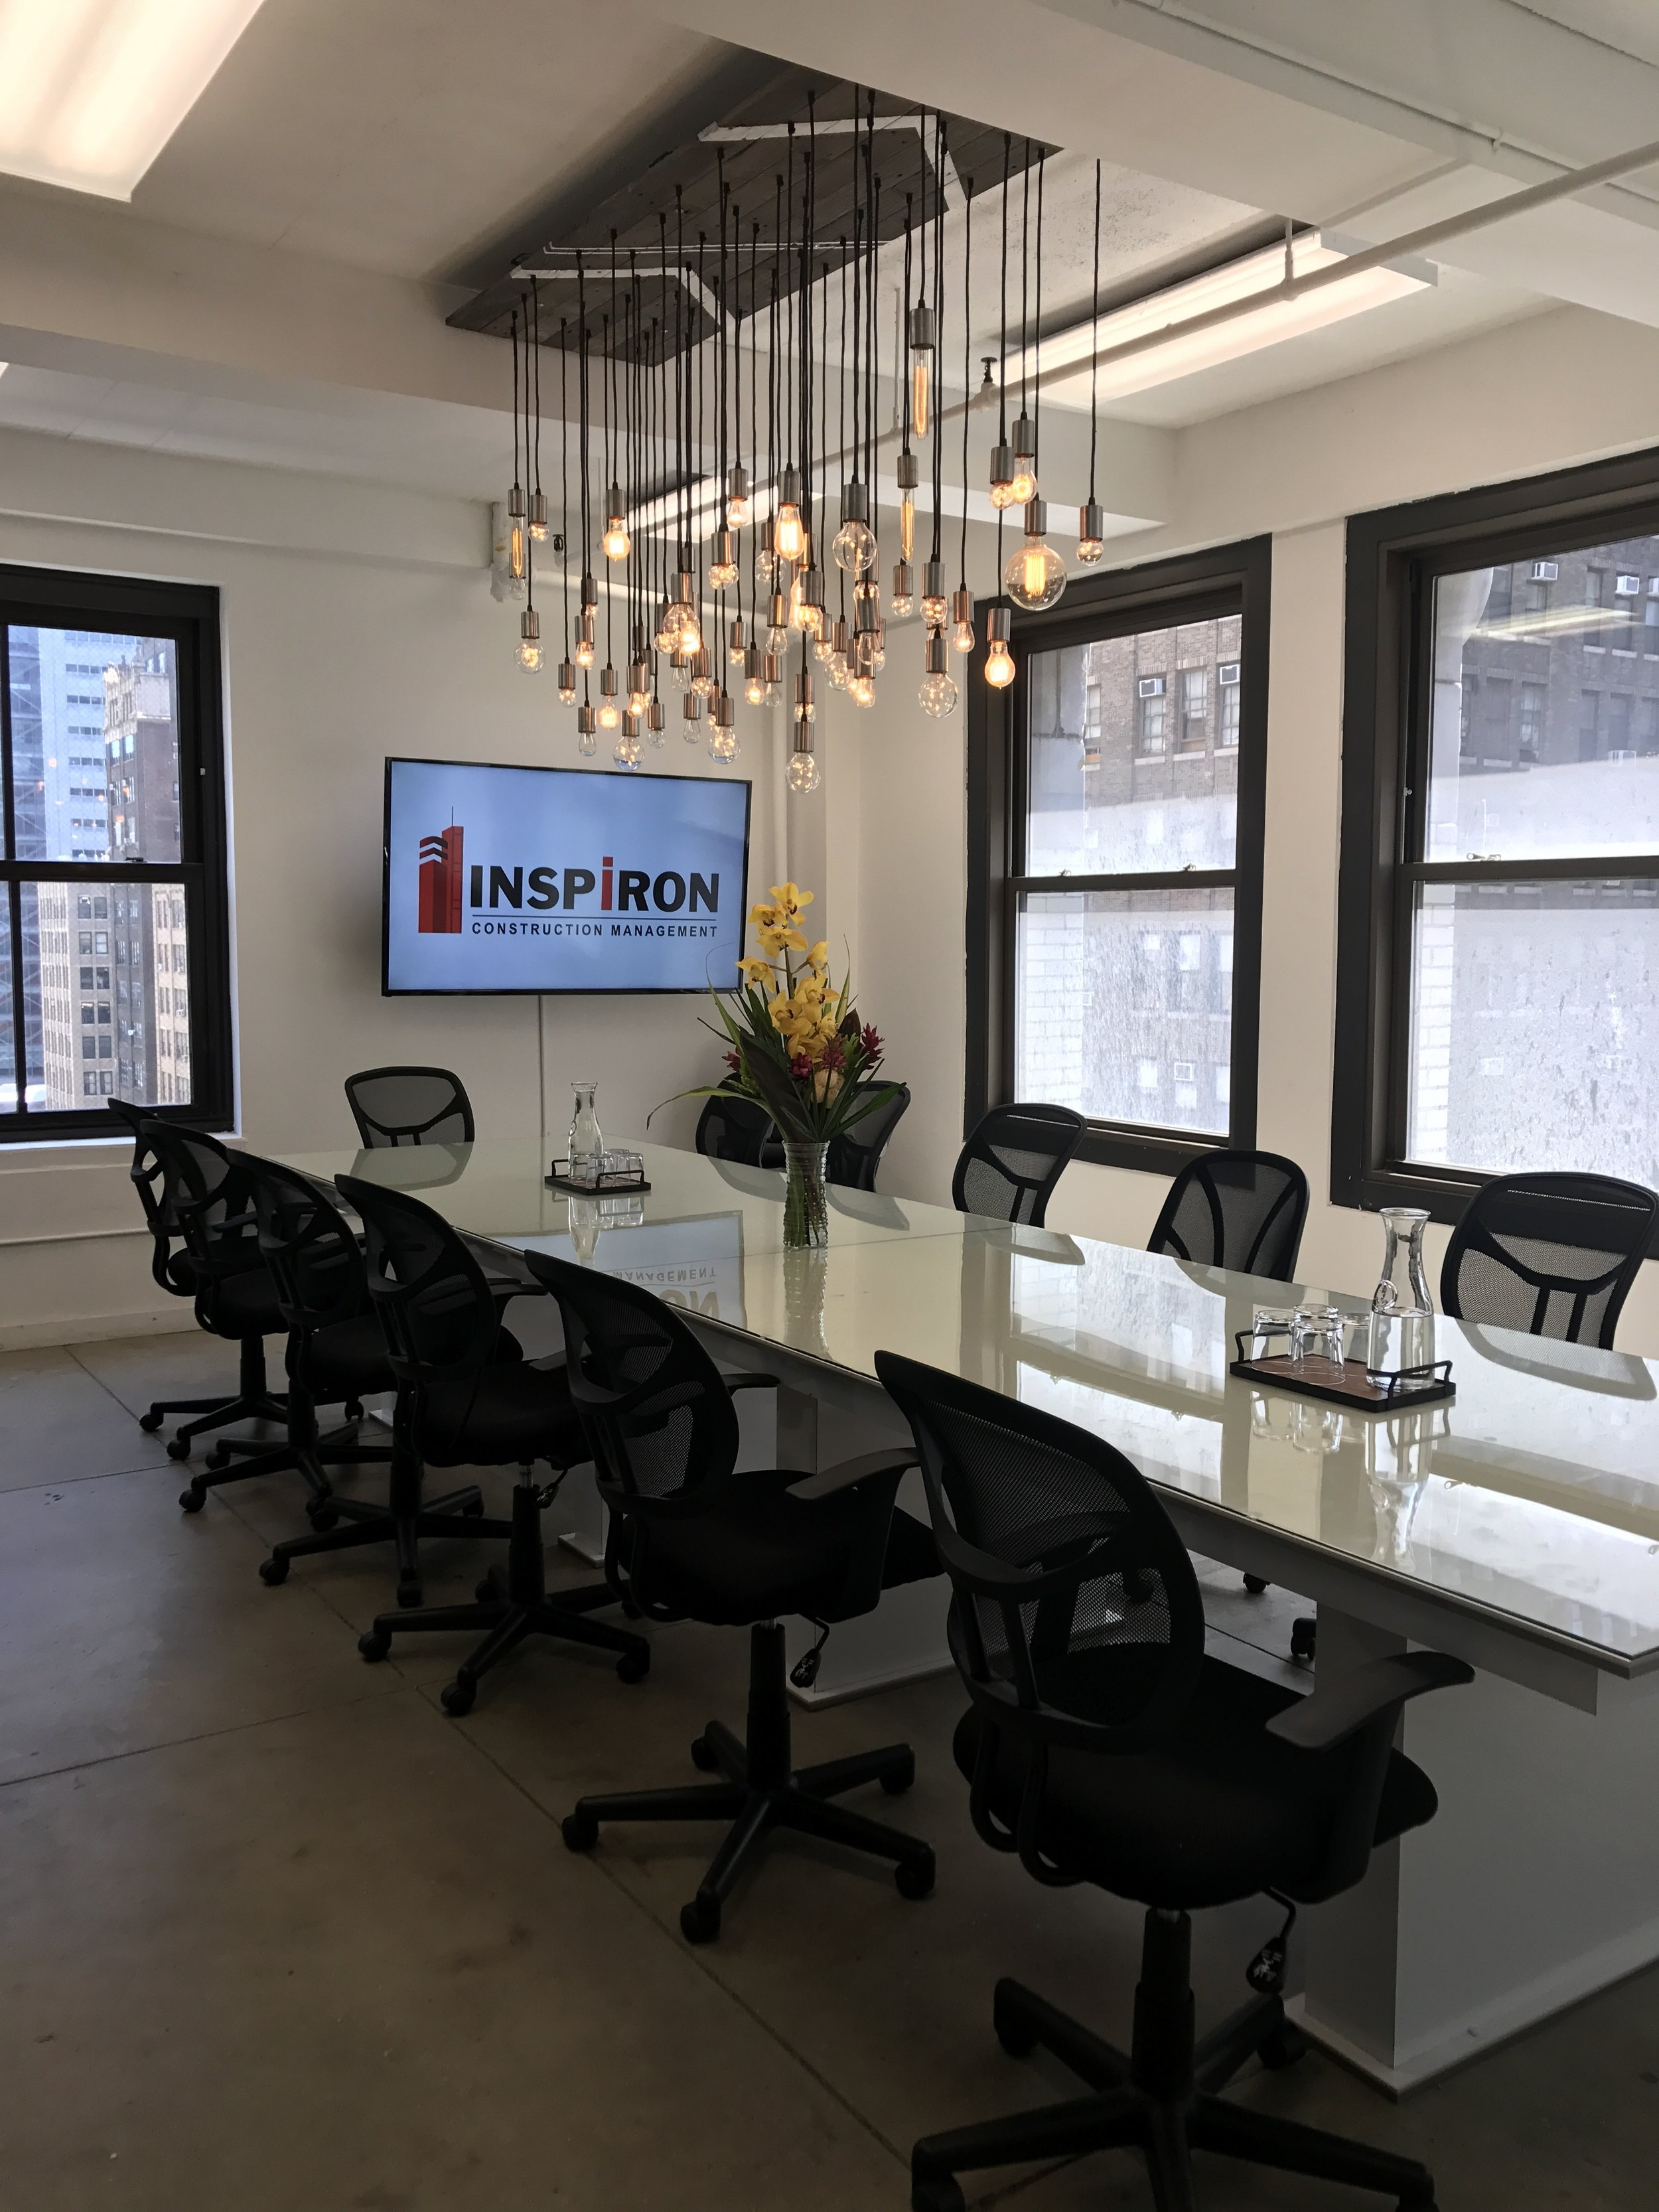 Inspiron Conference Room.jpg